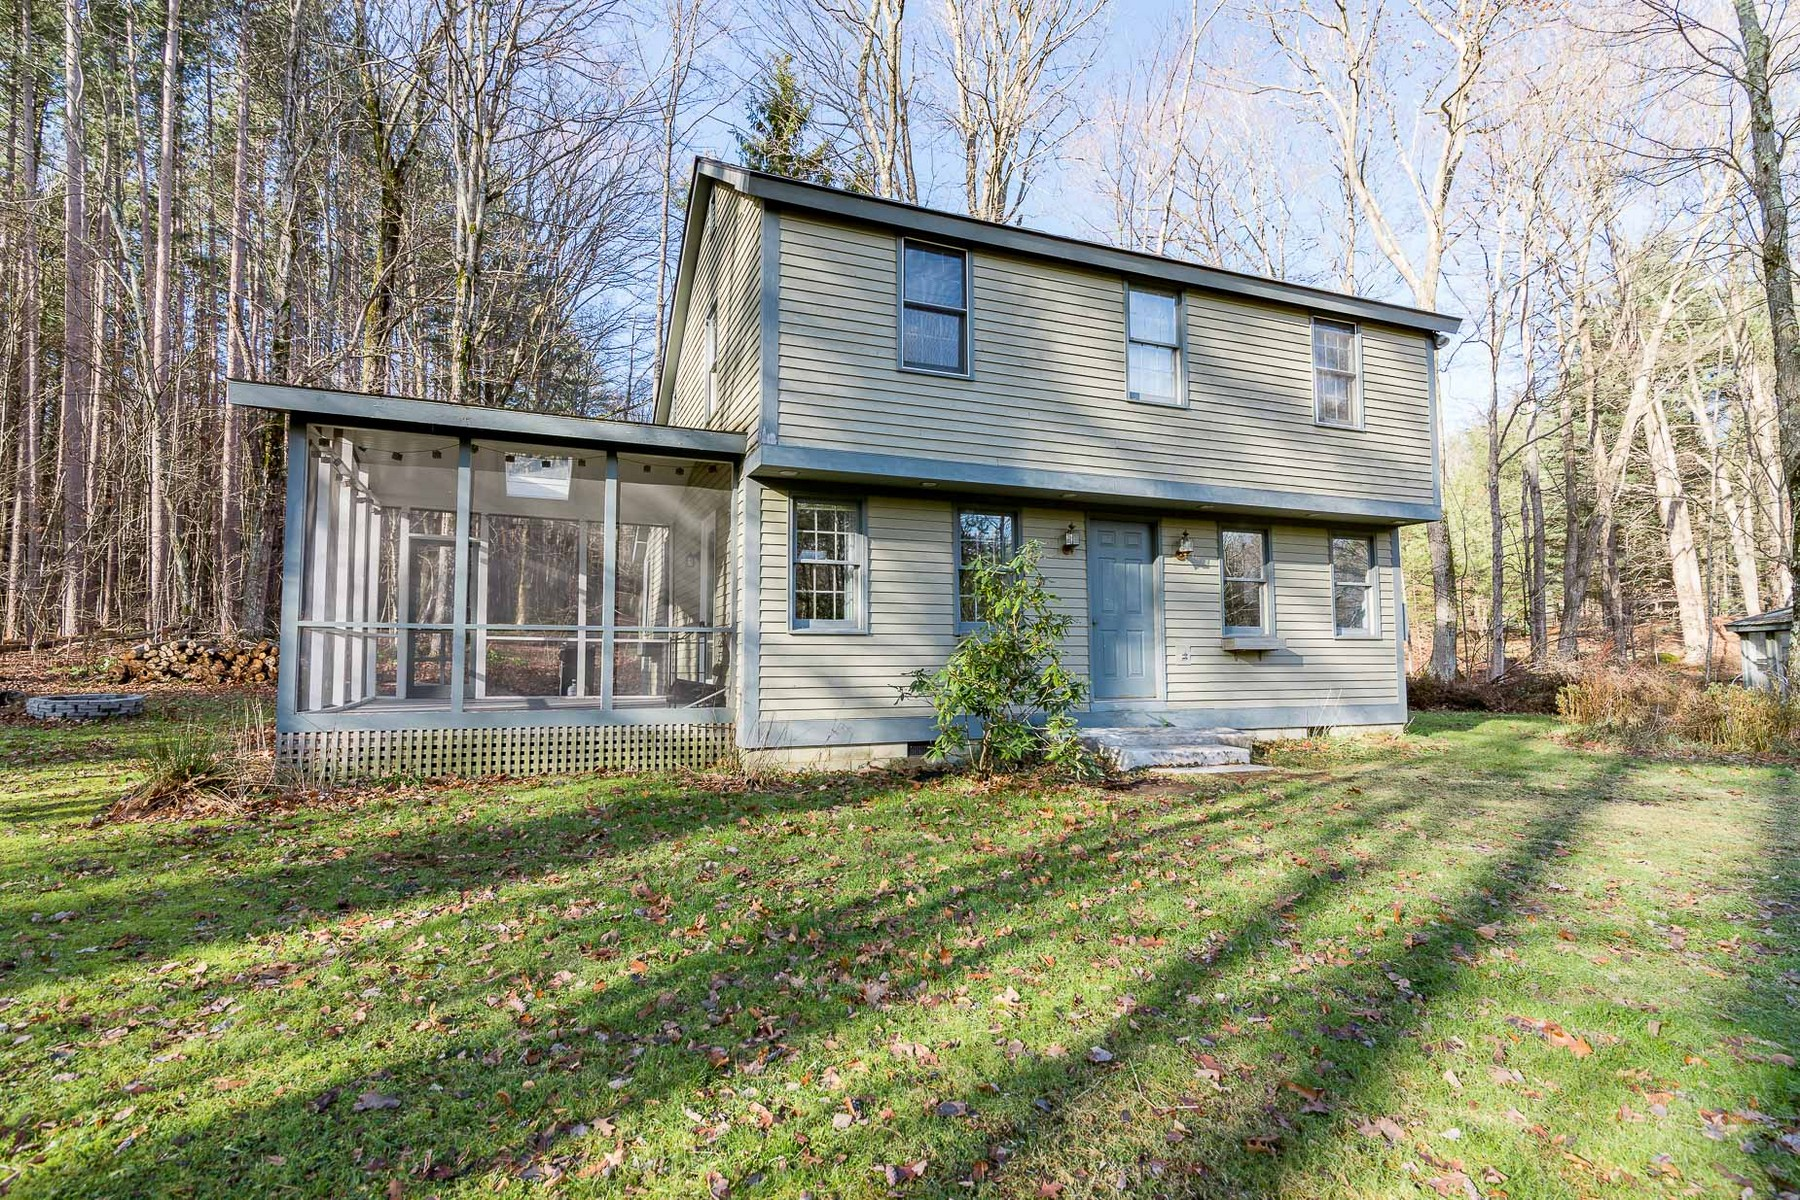 Single Family Home for Sale at Fieldstone Fireplace and Screened in Porch 1678 Old West Arlington, Vermont 05250 United States